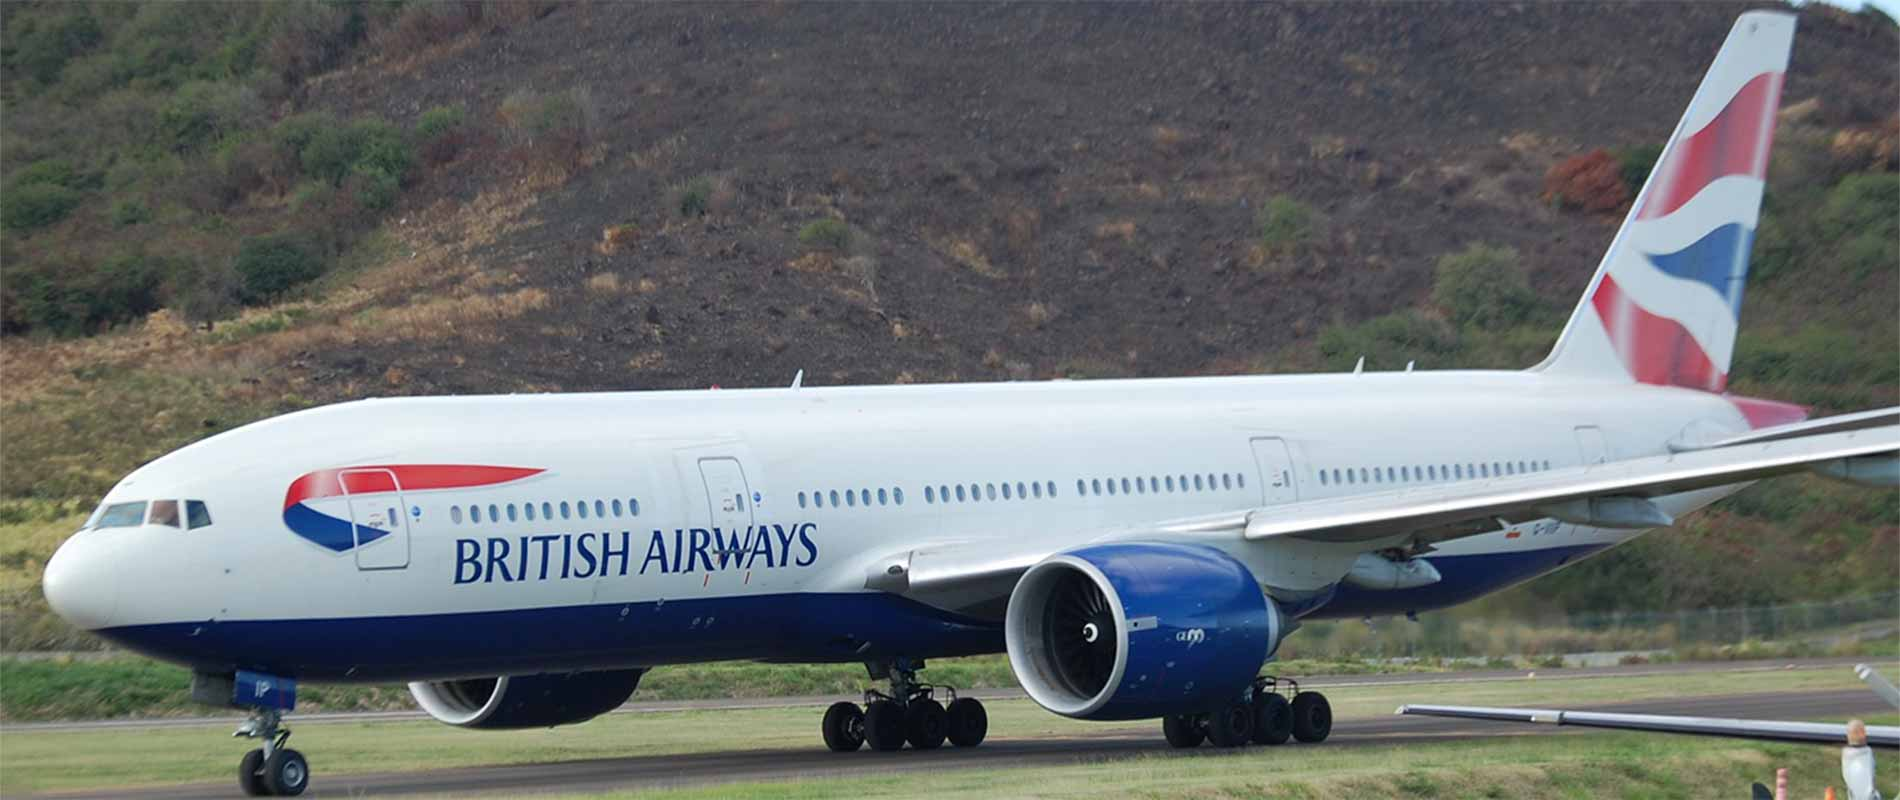 British Airways landed at St Kitts airport